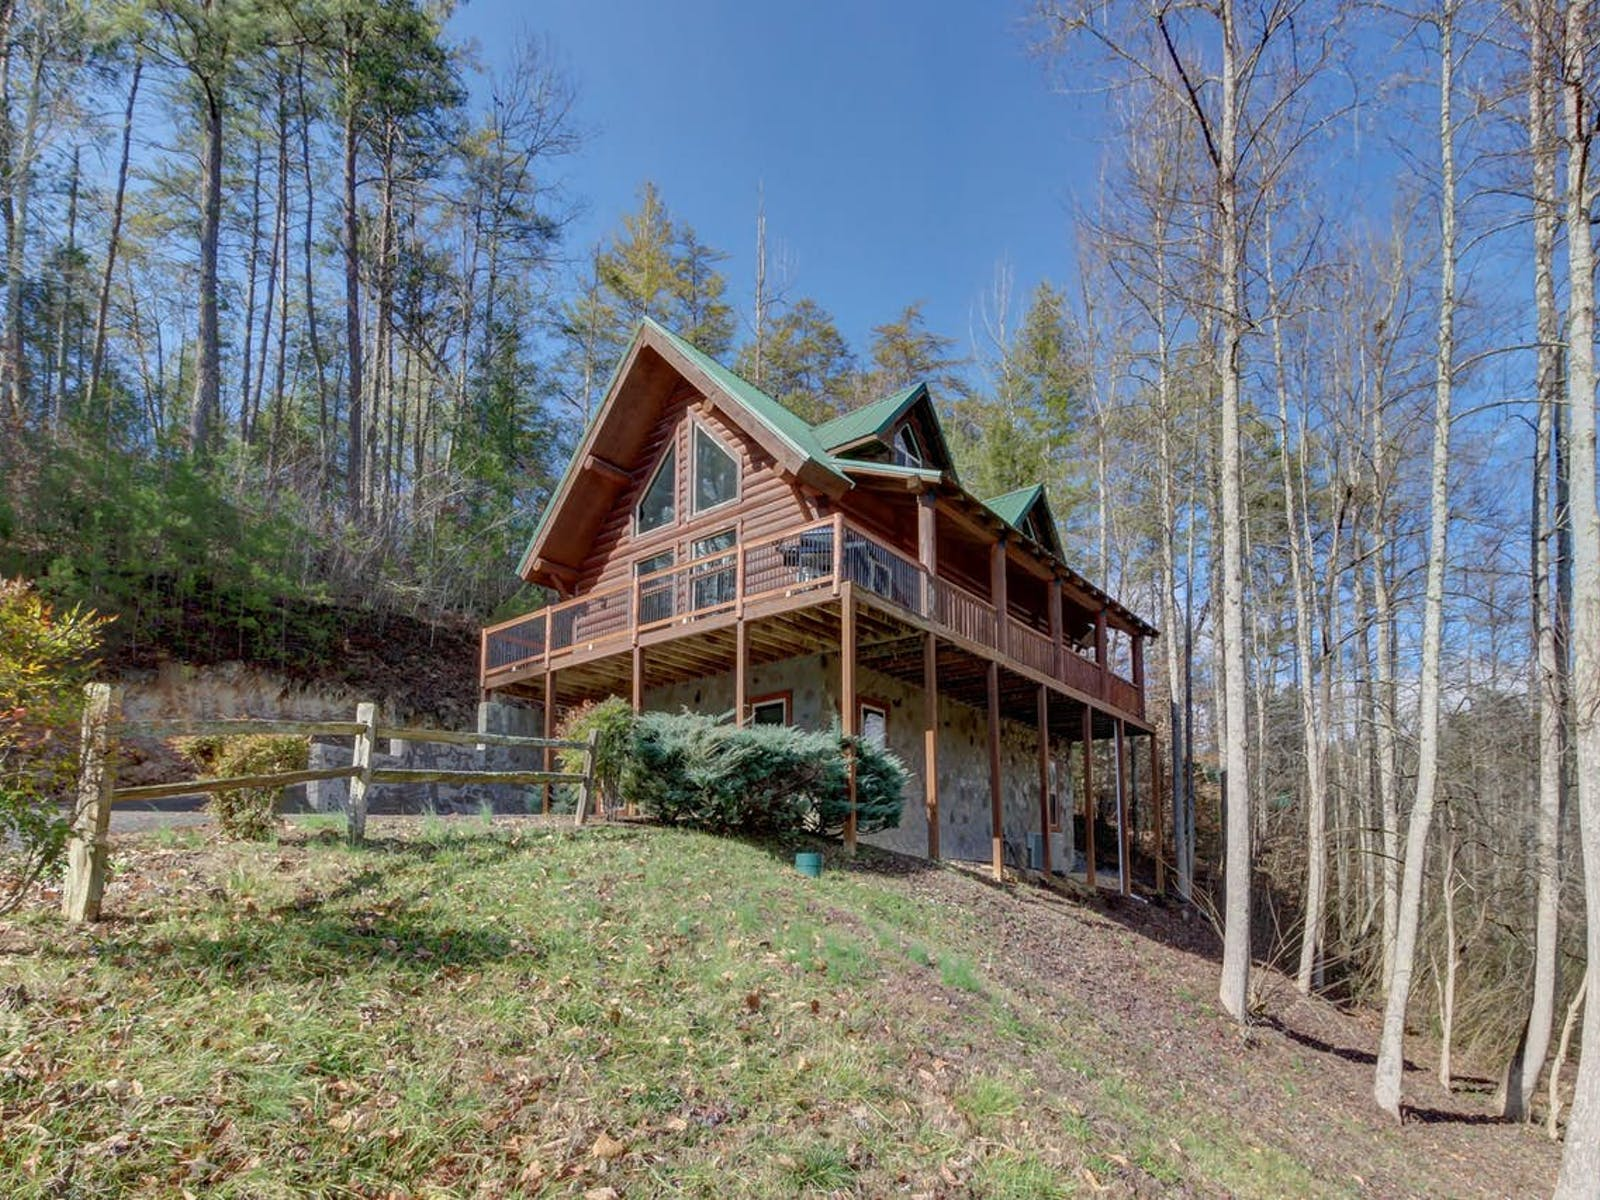 Vacation cabin rental in the Smoky Mountains